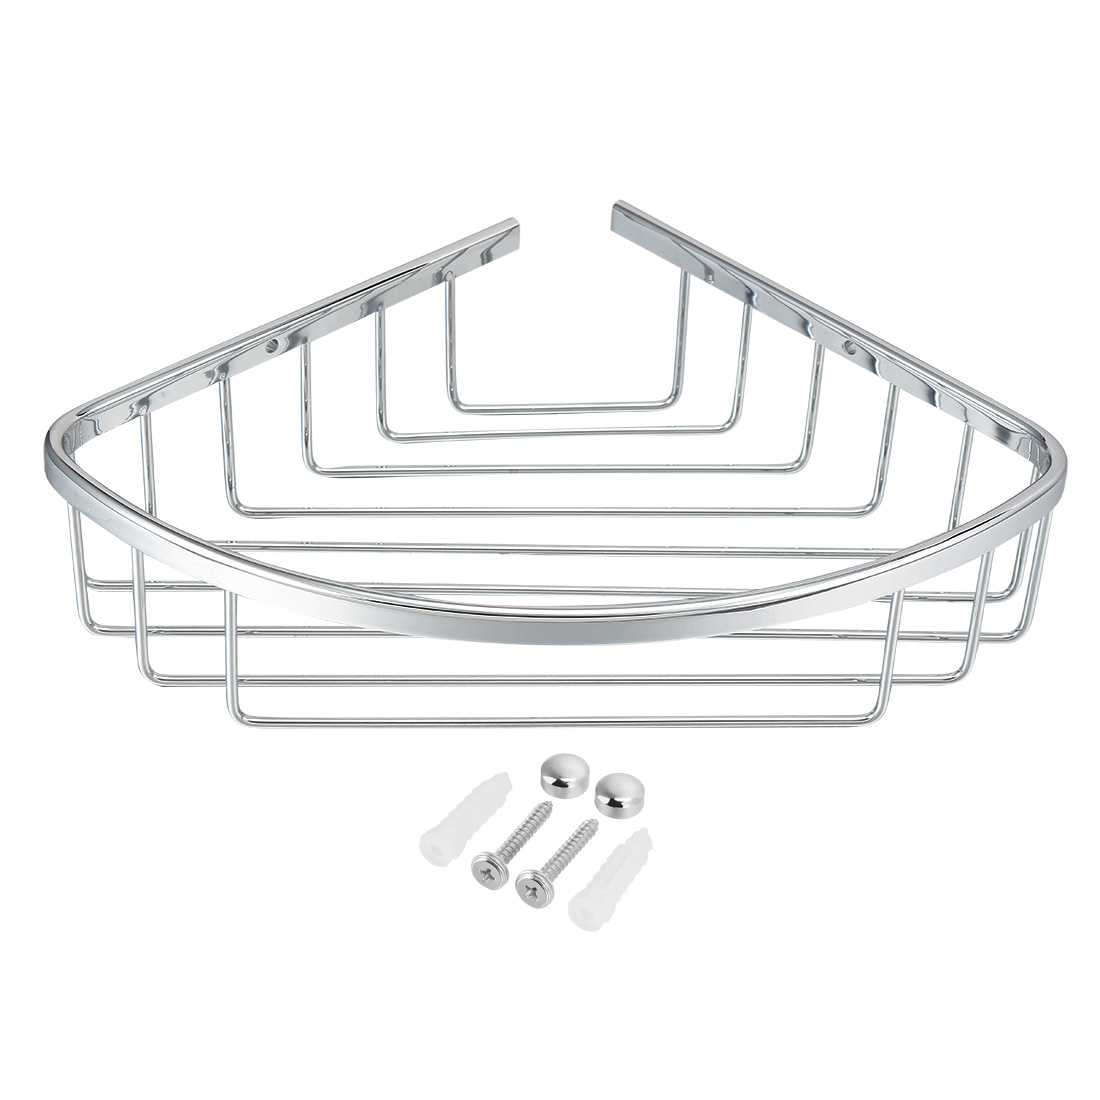 11.4-inch x 8-inch Brass Bathroom Basket Shower Caddy Corner Shelf Silver Tone by